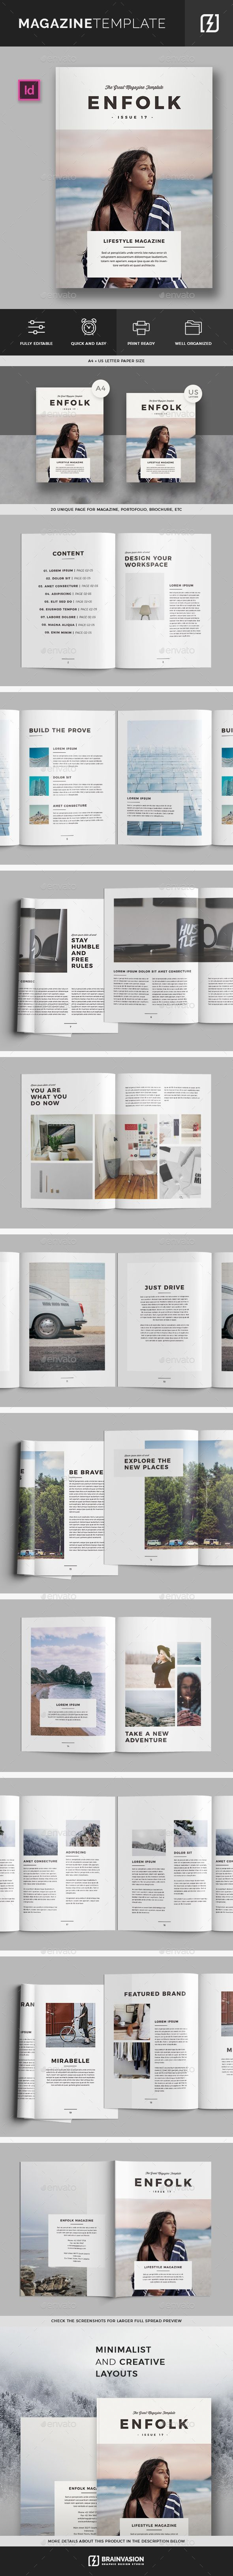 Magazine Template | Pinterest | Template and Brochures